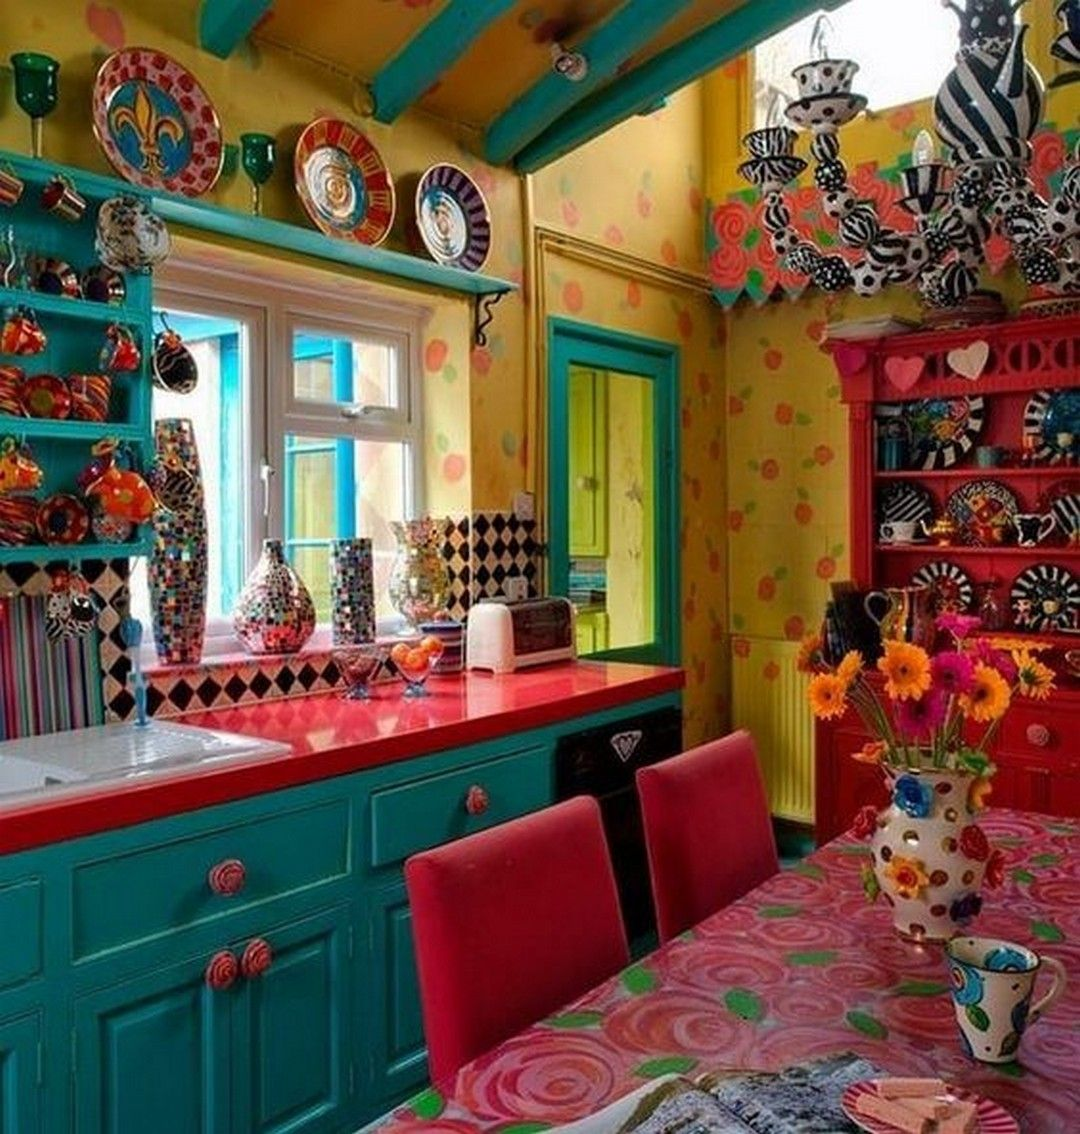 best chic home decor ideas that you should try in 2020 bohemian kitchen mexican kitchen decor on boho chic home decor kitchen id=13812